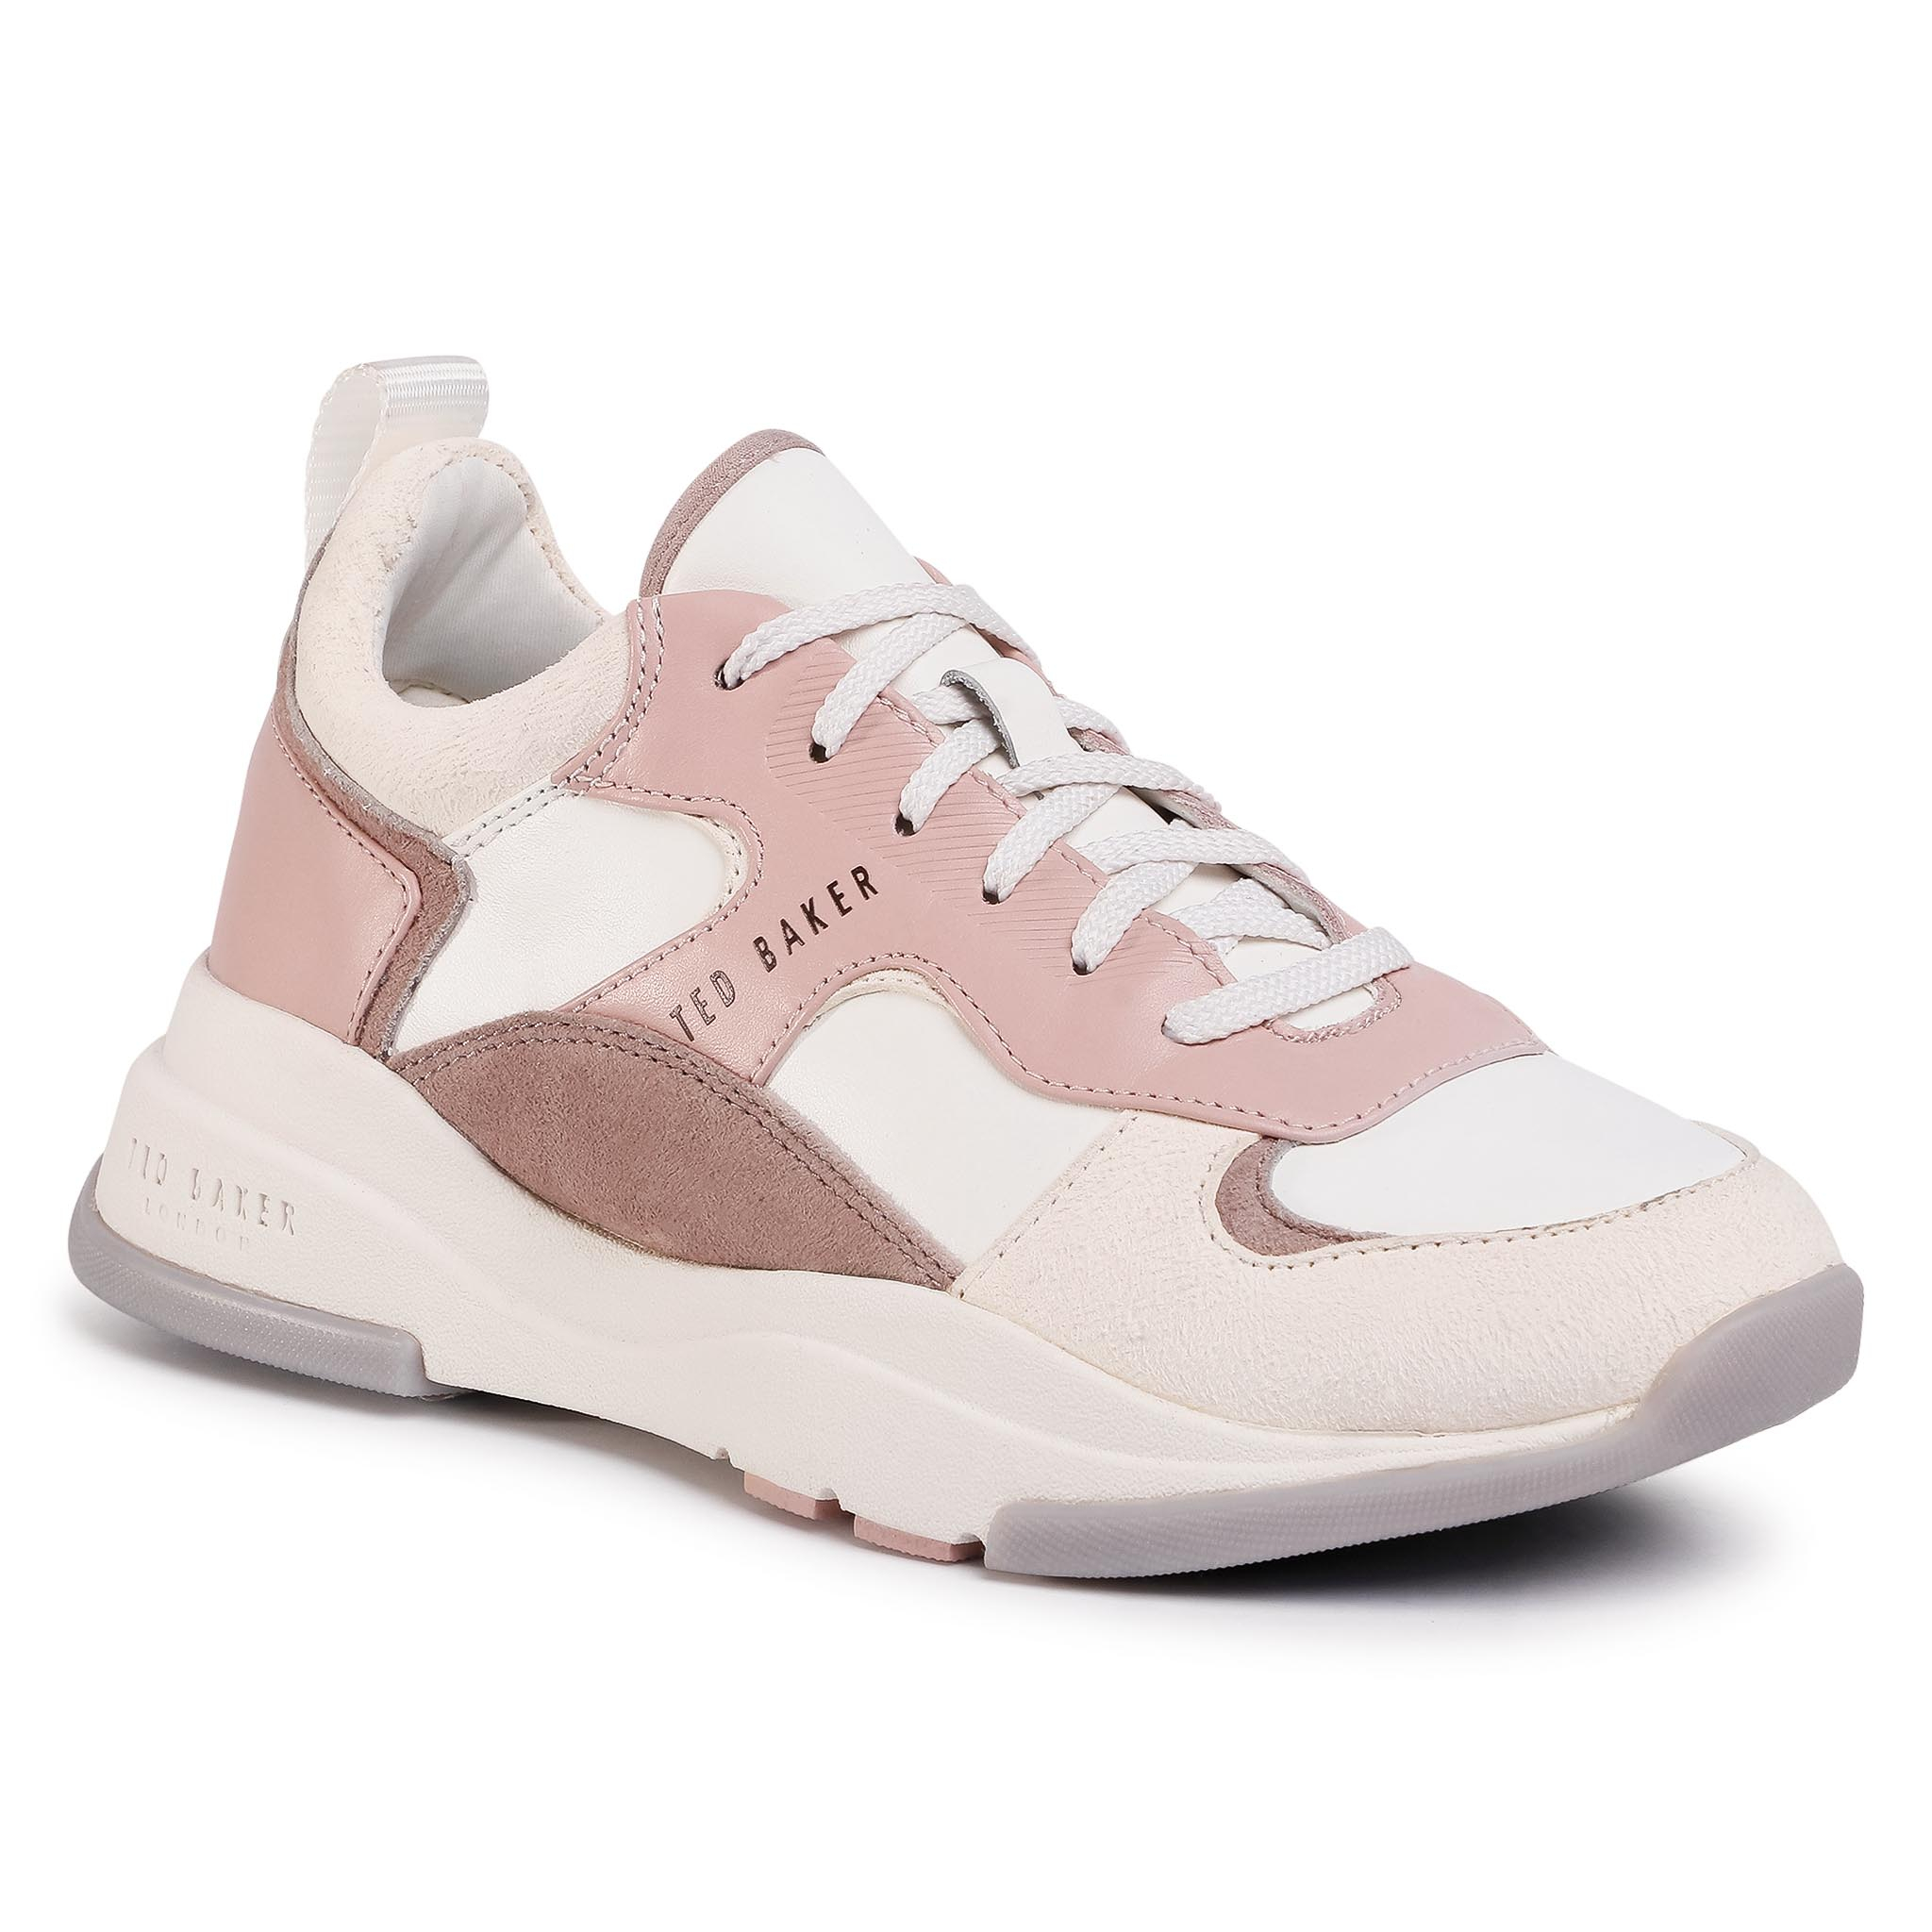 Sneakers TED BAKER - Winslop 242470 Nude/Pink